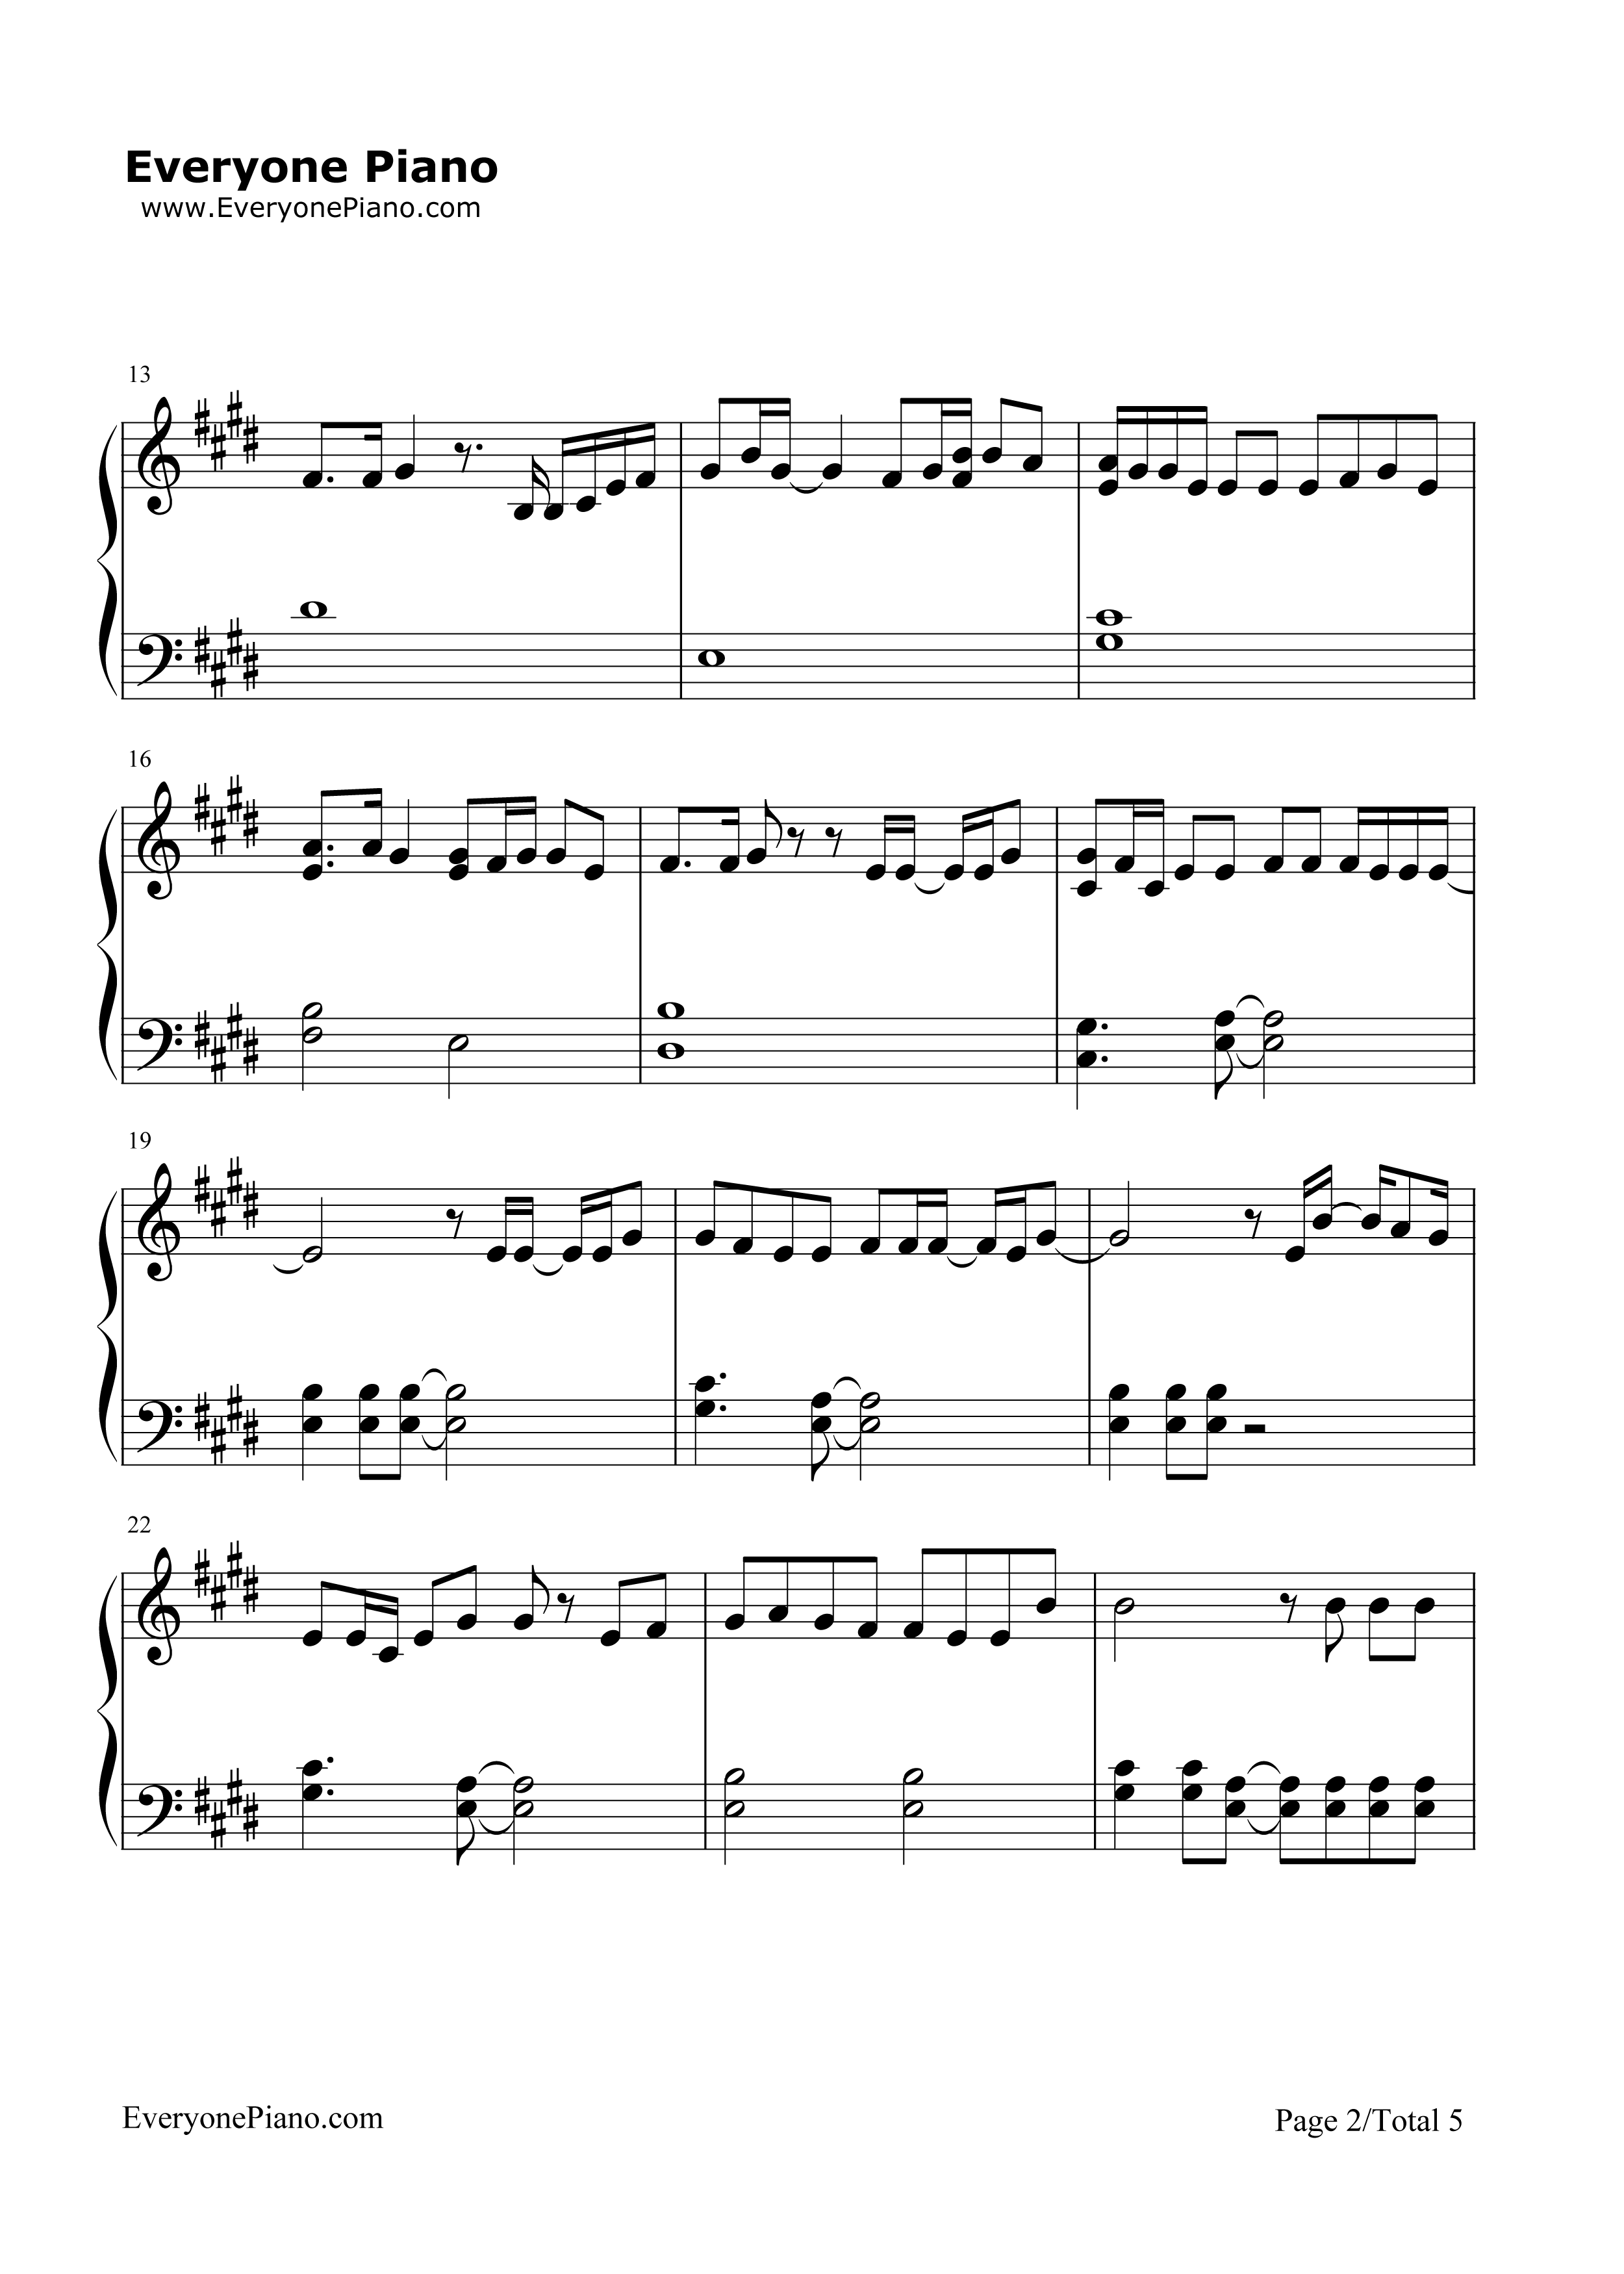 Love Yourself-Justin Bieber Stave Preview 2-Free Piano Sheet Music u0026 Piano Chords